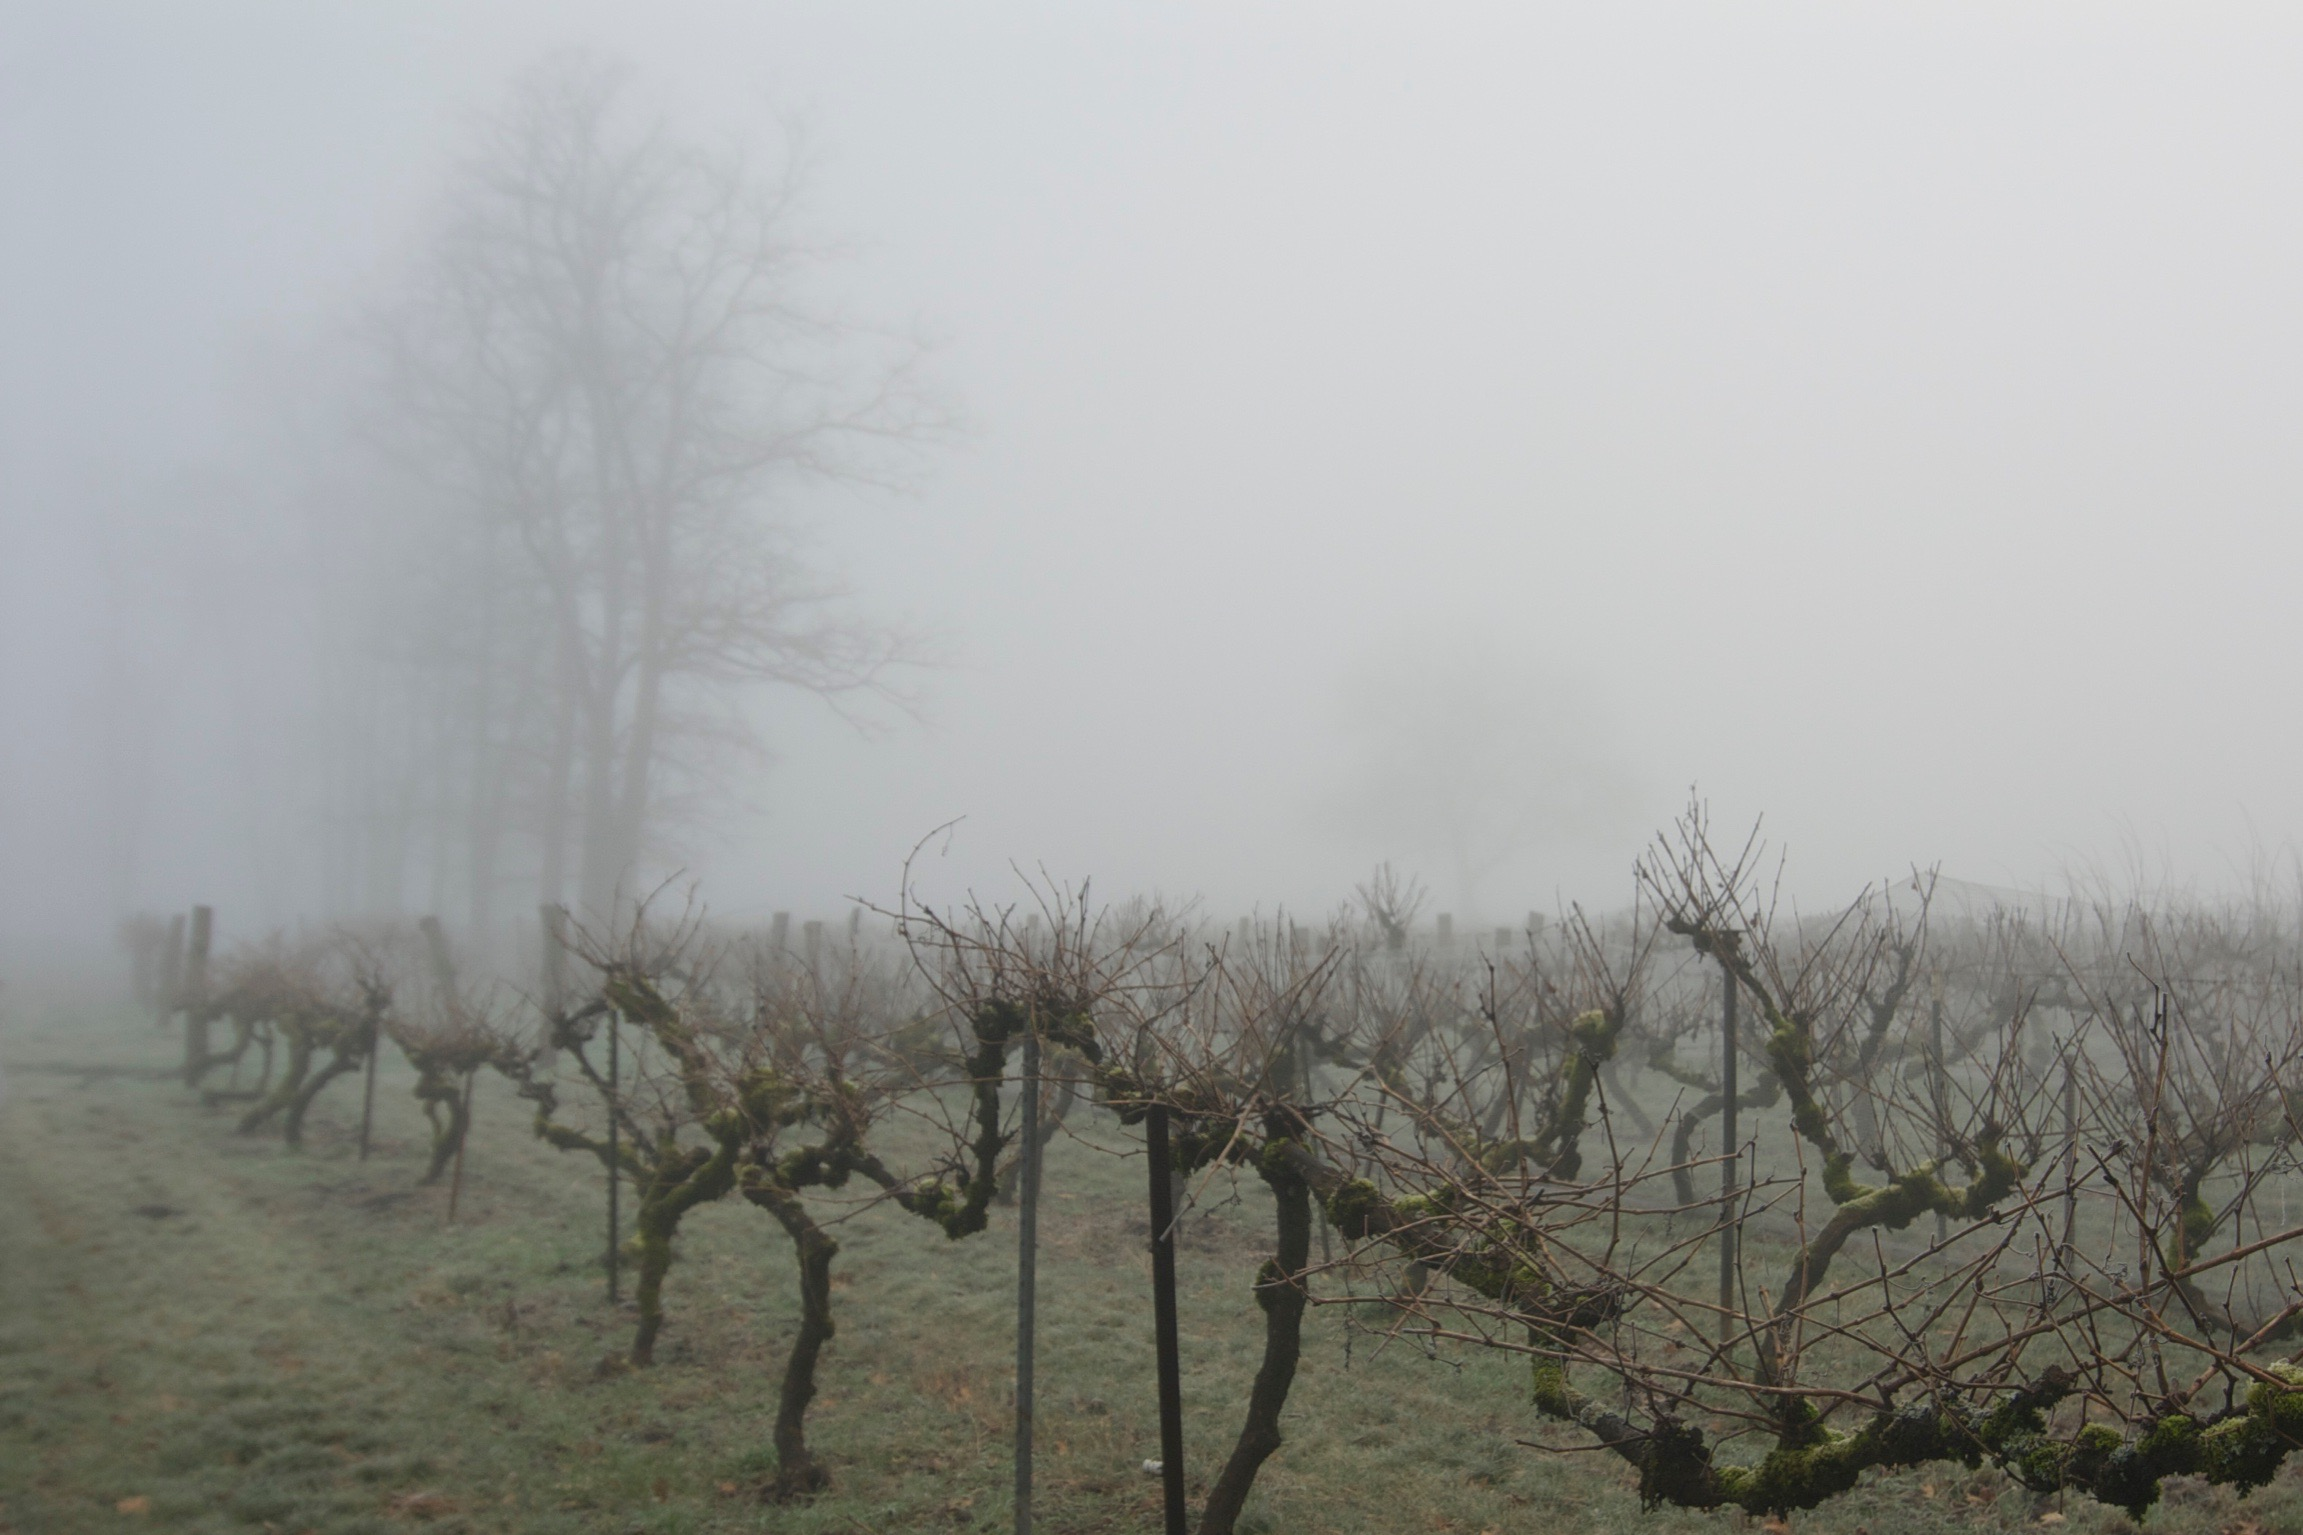 The vineyard in winter. Resting and storing up moisture for our hot, dry summers.